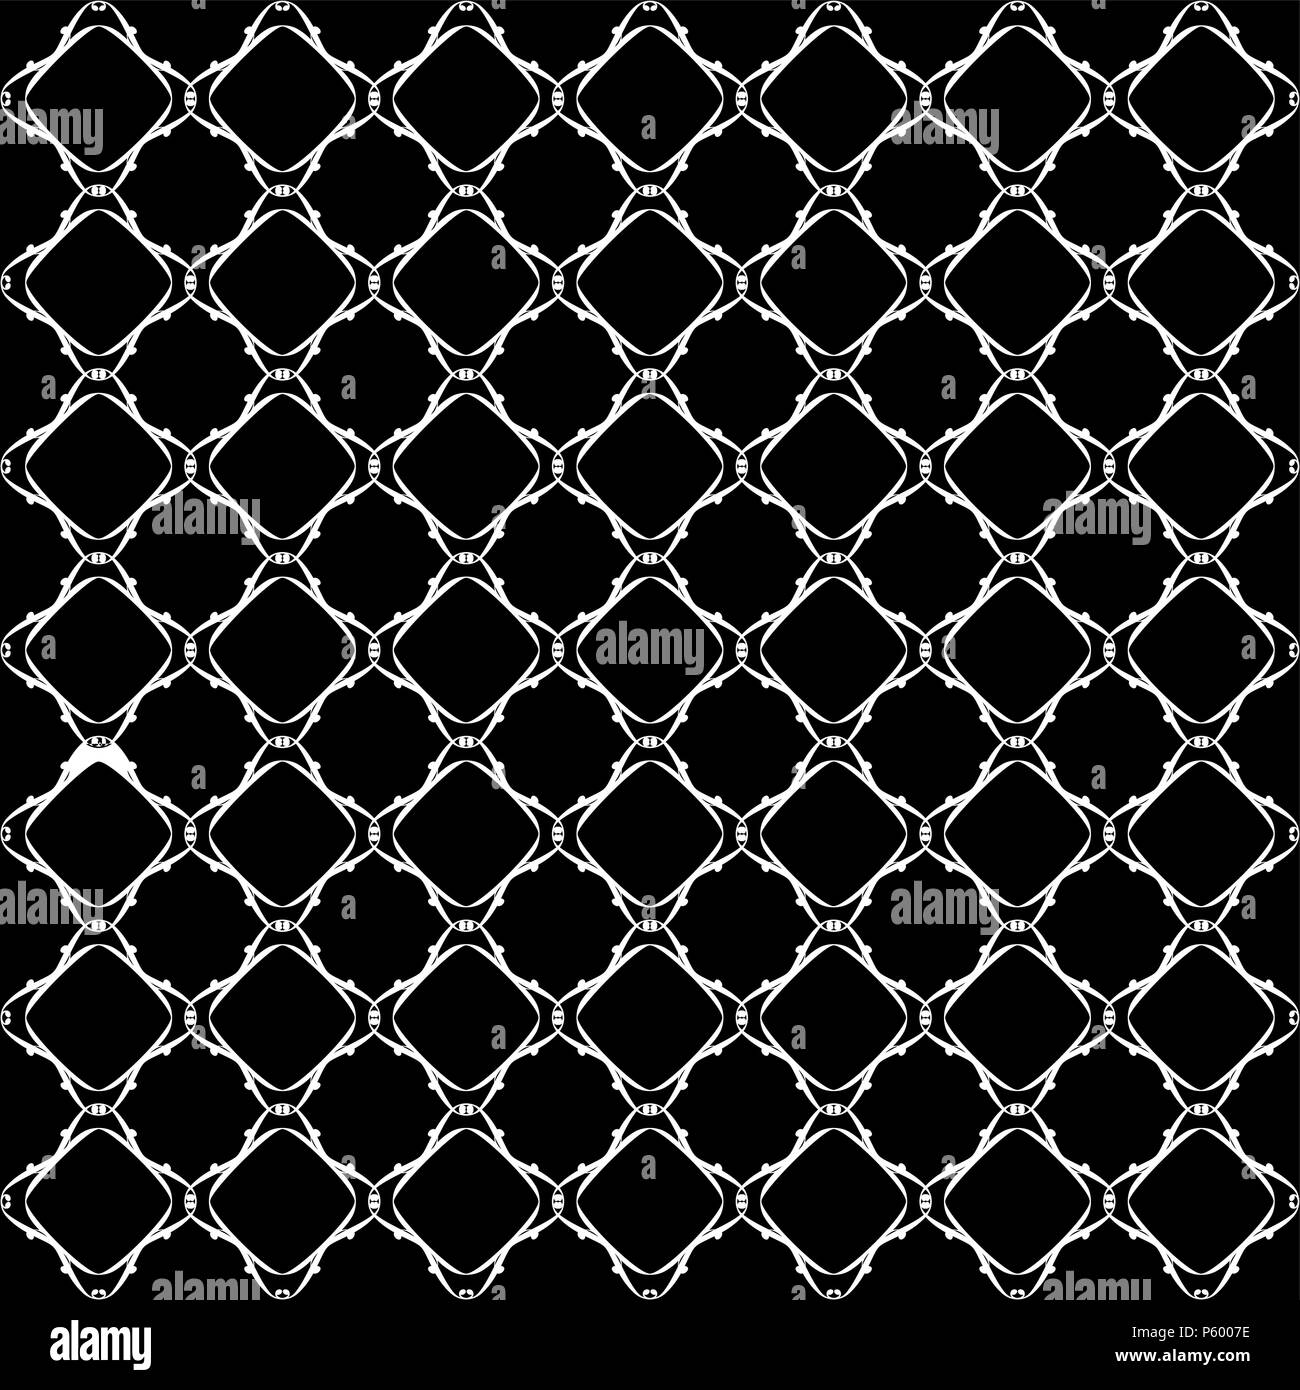 Lacy black and white pattern with lines - Stock Vector